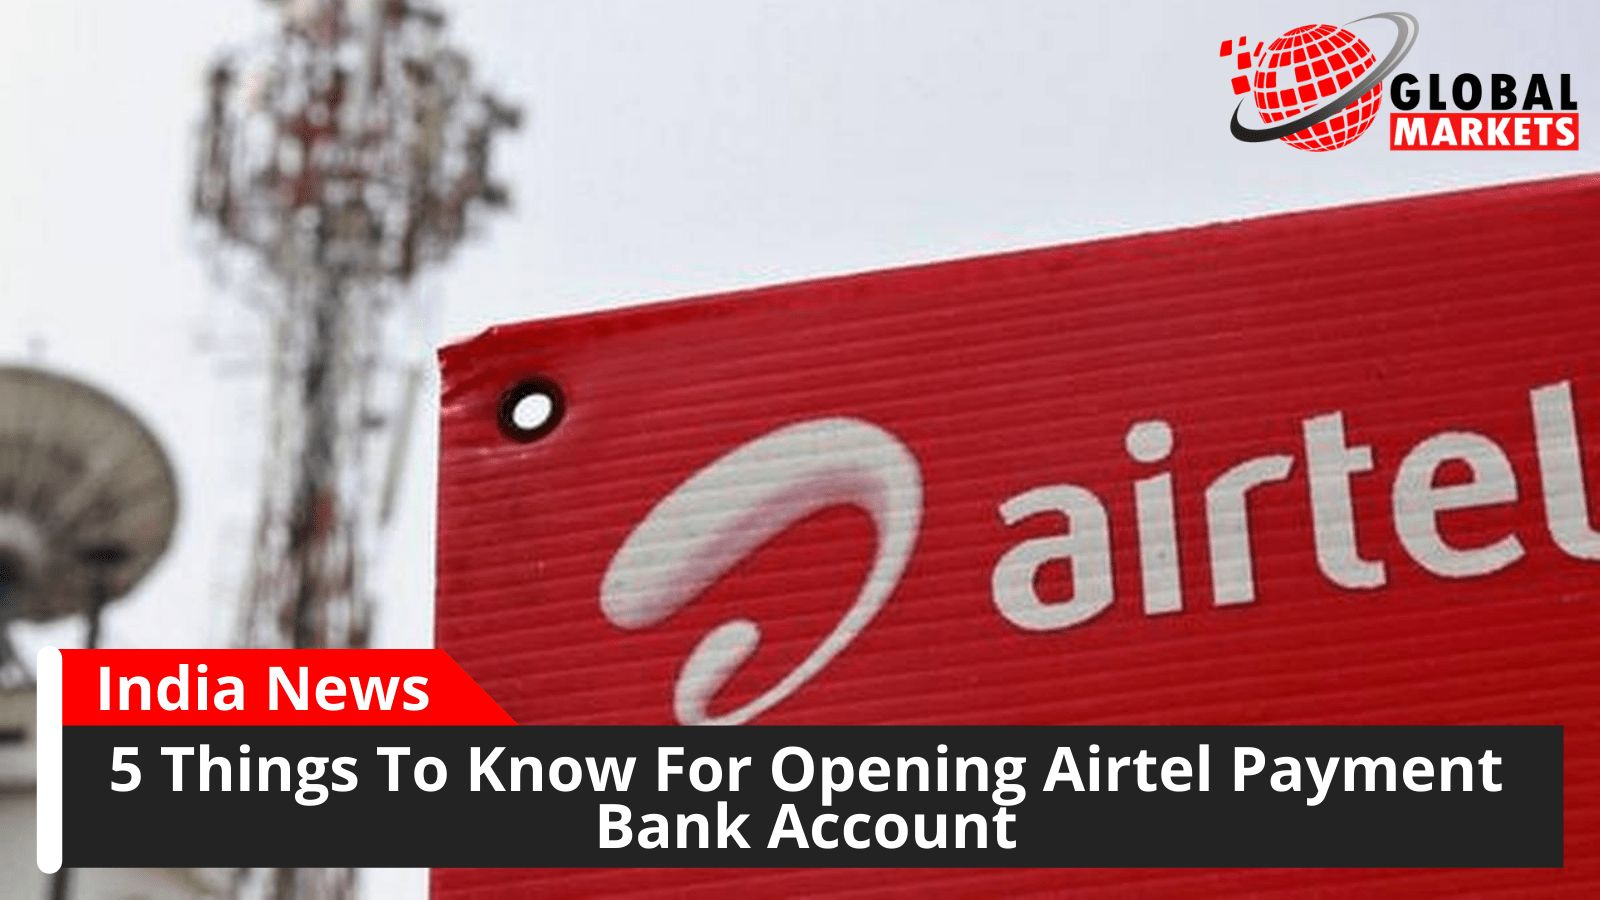 5 Things To Know For Opening Airtel Payment Bank Account